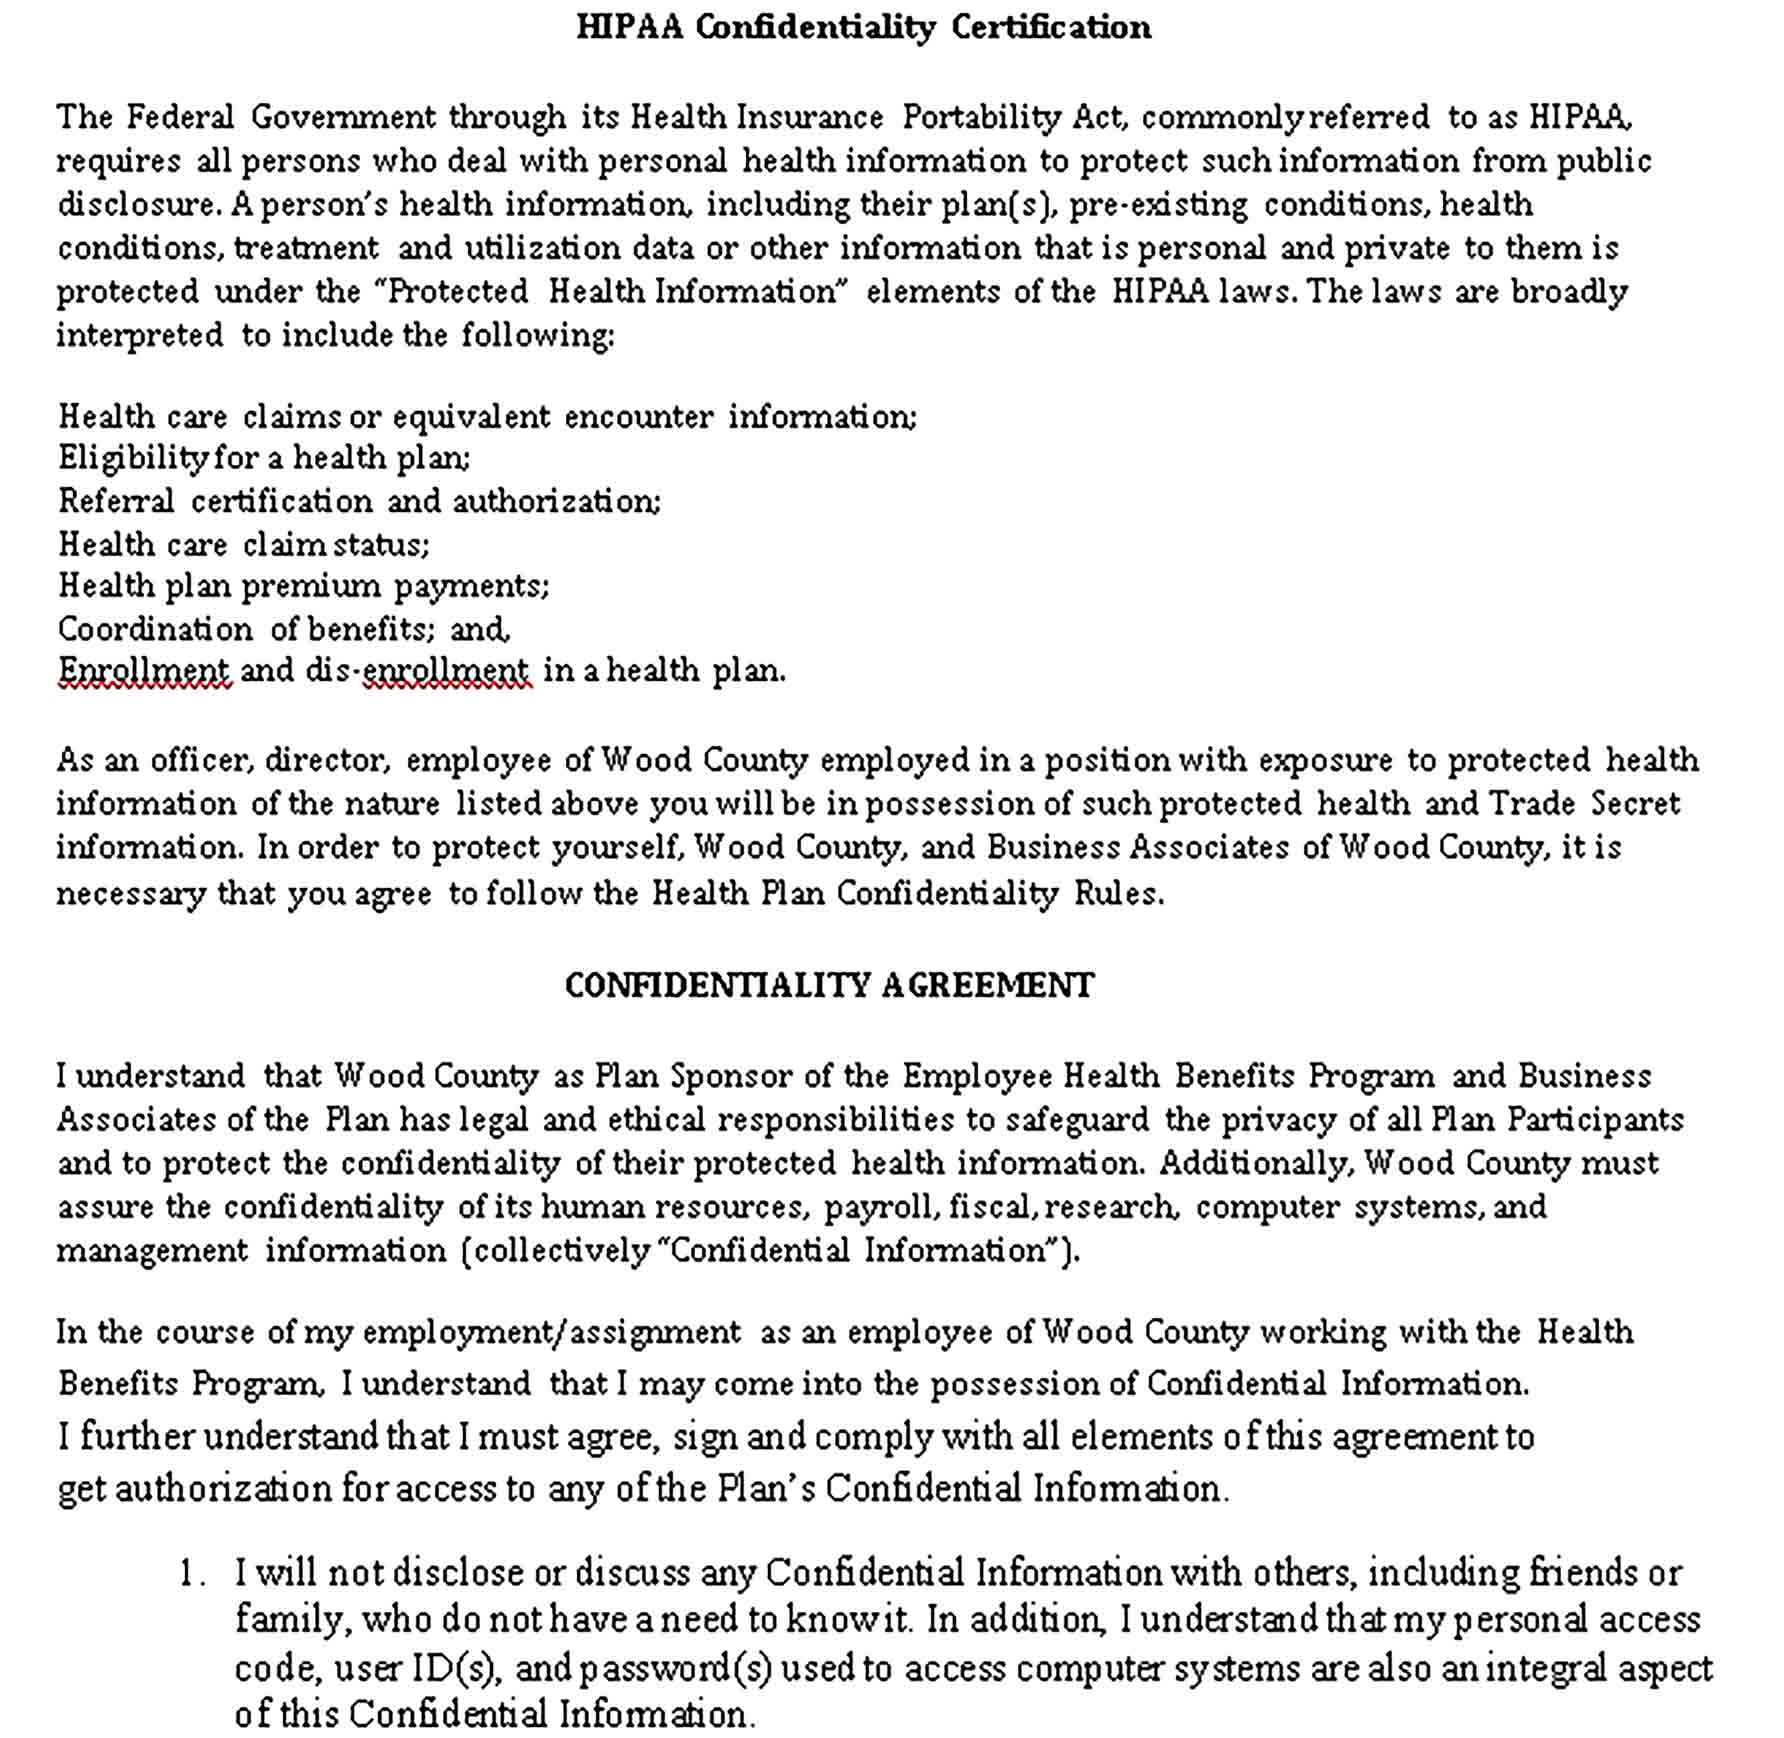 Templates HIPAA Employee Confidentiality Statement Sample